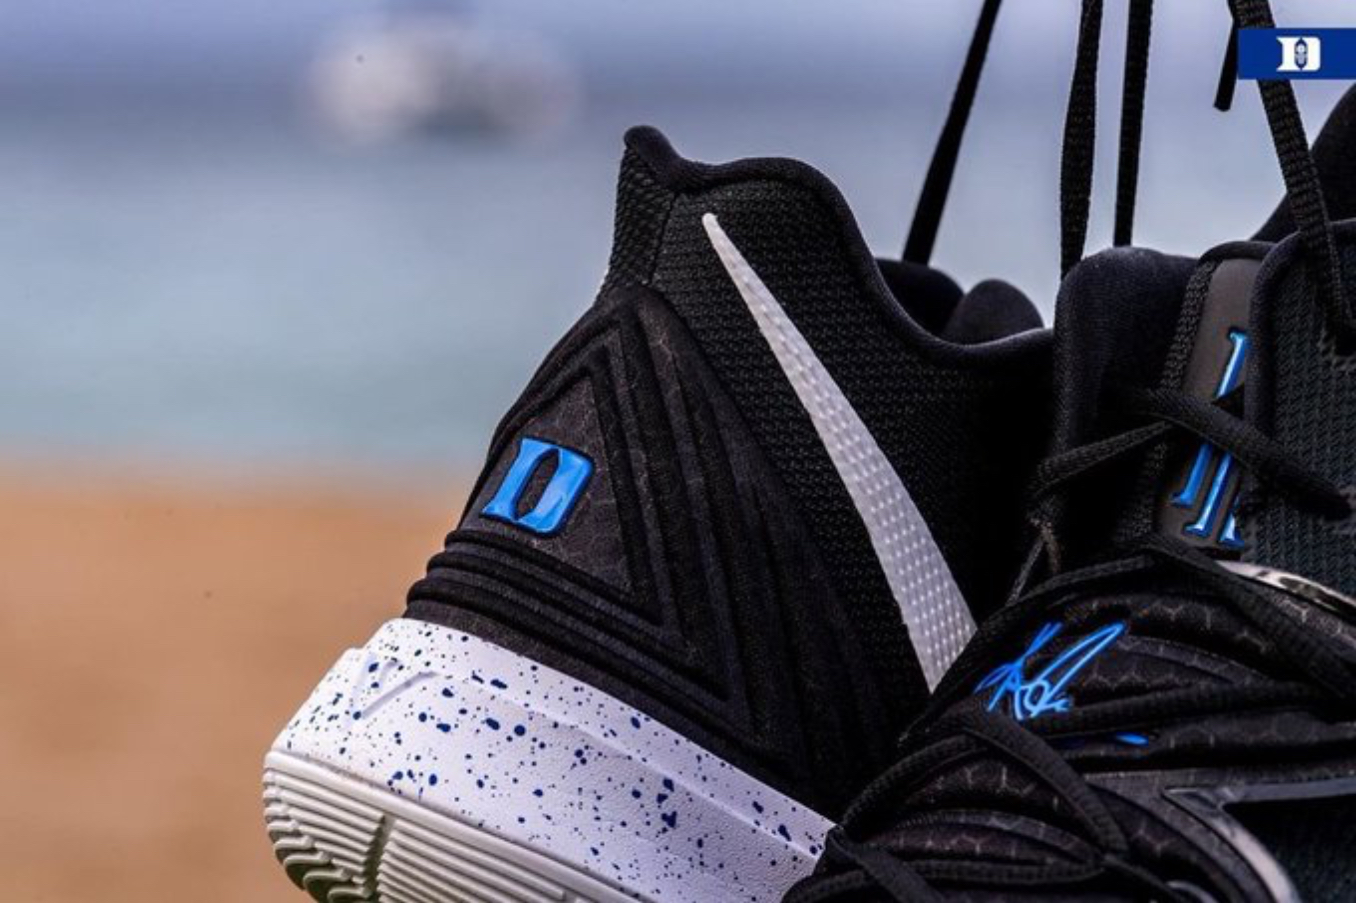 hot sale online a7bc0 3512d When the Duke Men s basketball team takes the court in the Maui  Invitational, they will have some new kicks on their feet. As Kyrie Irving  is one of the ...